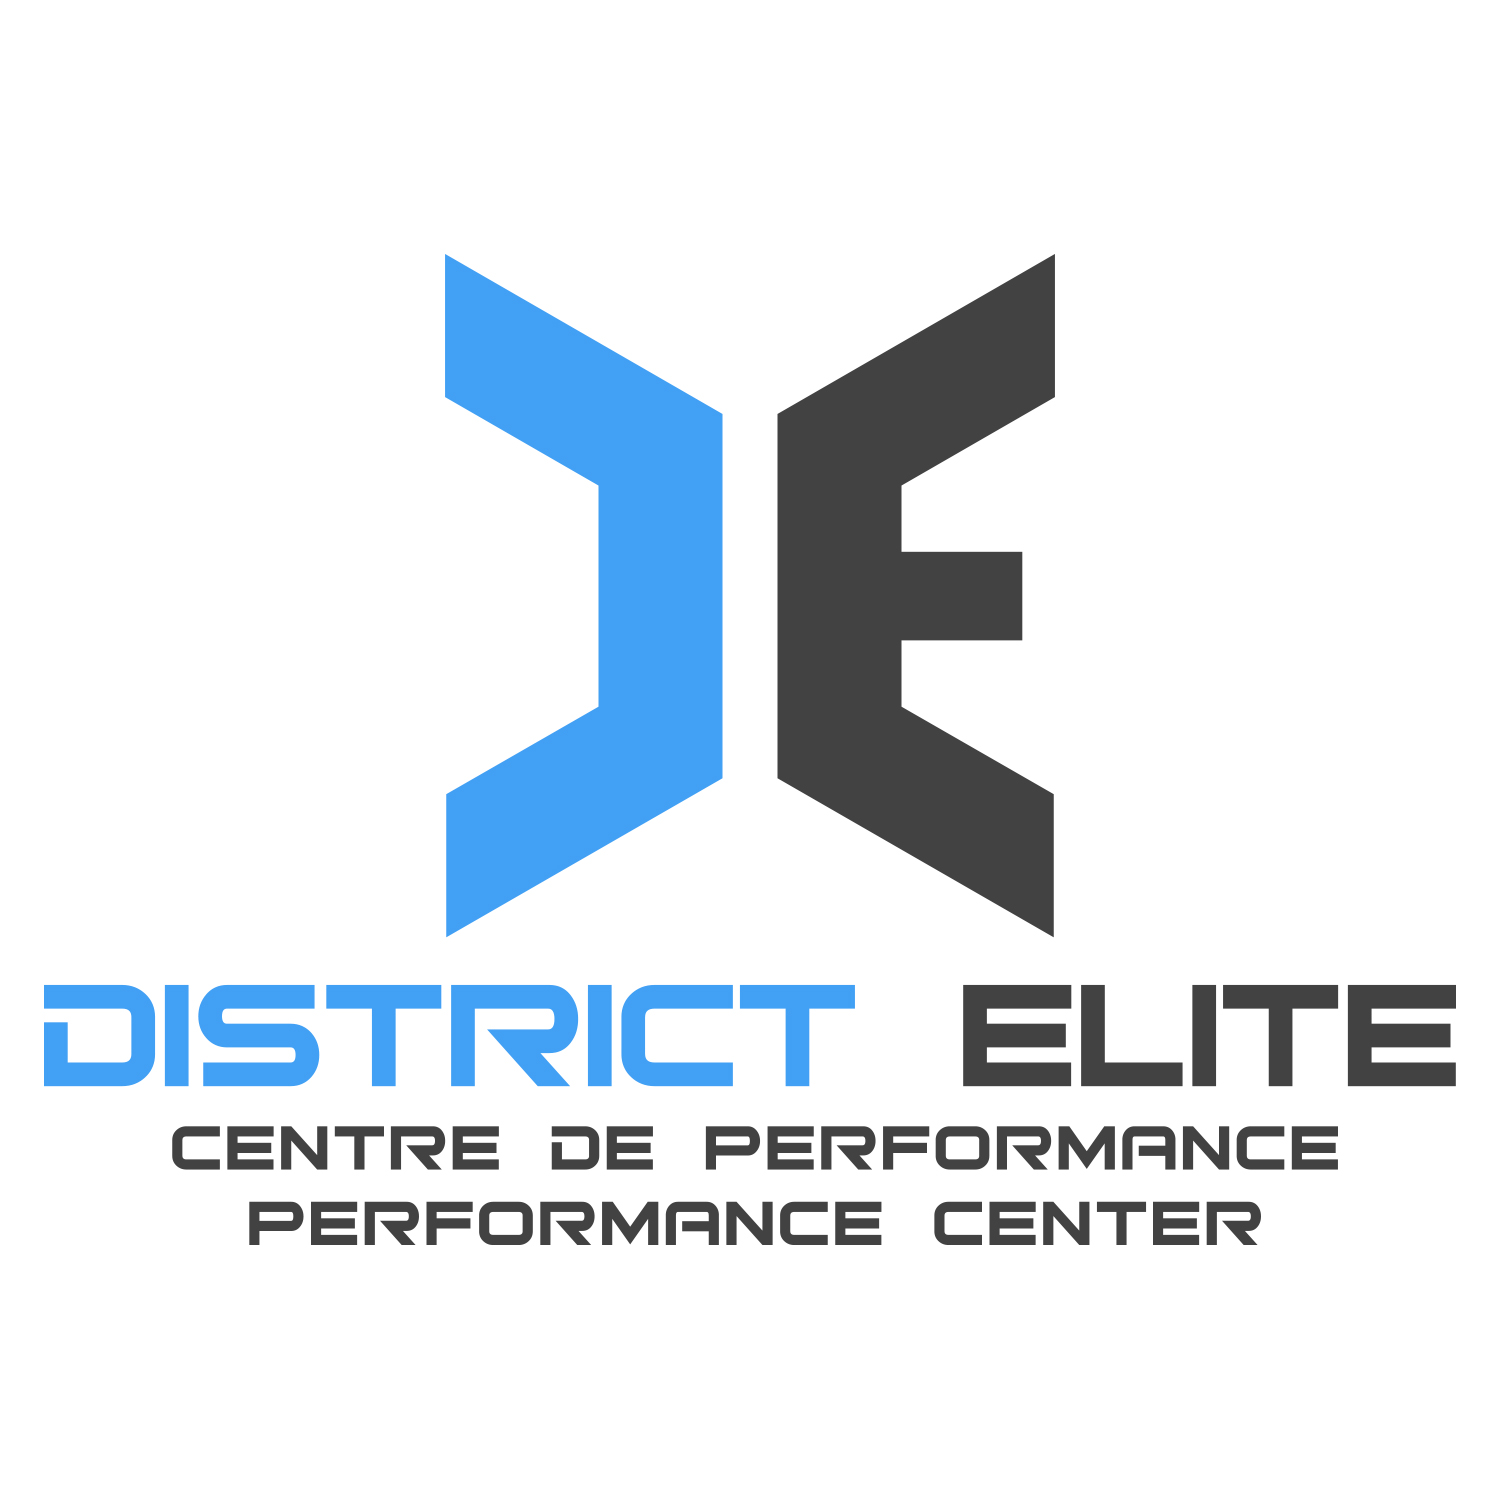 DISTRICT ELITE_A